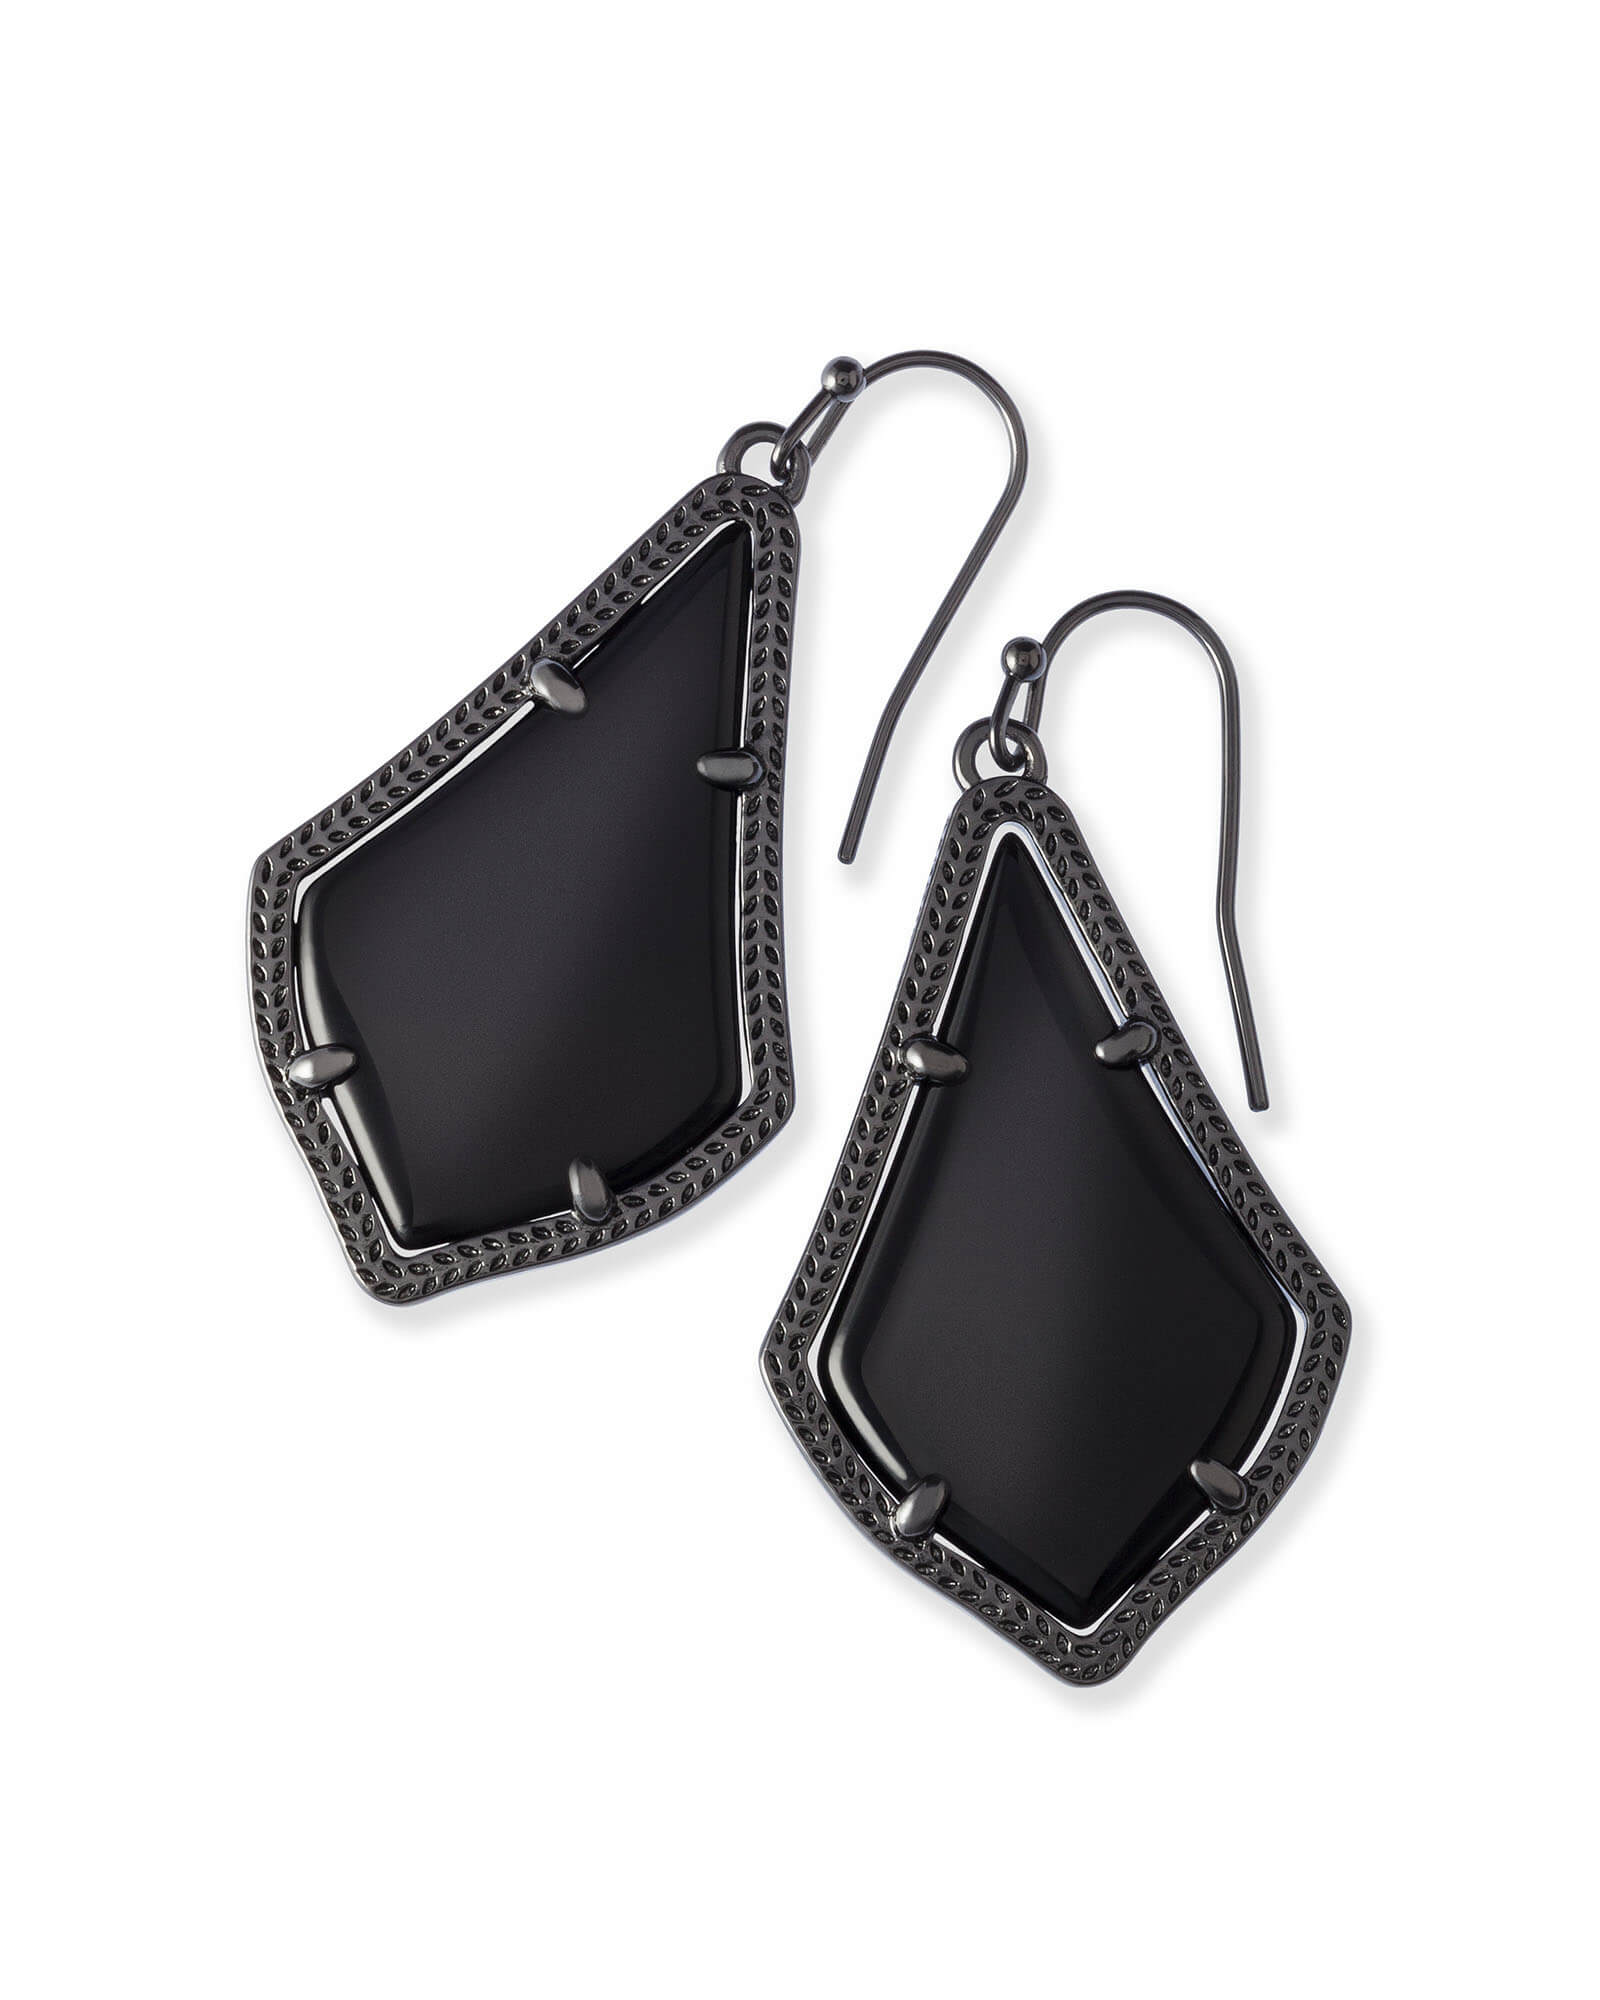 Alex Drop Earrings in Gunmetal